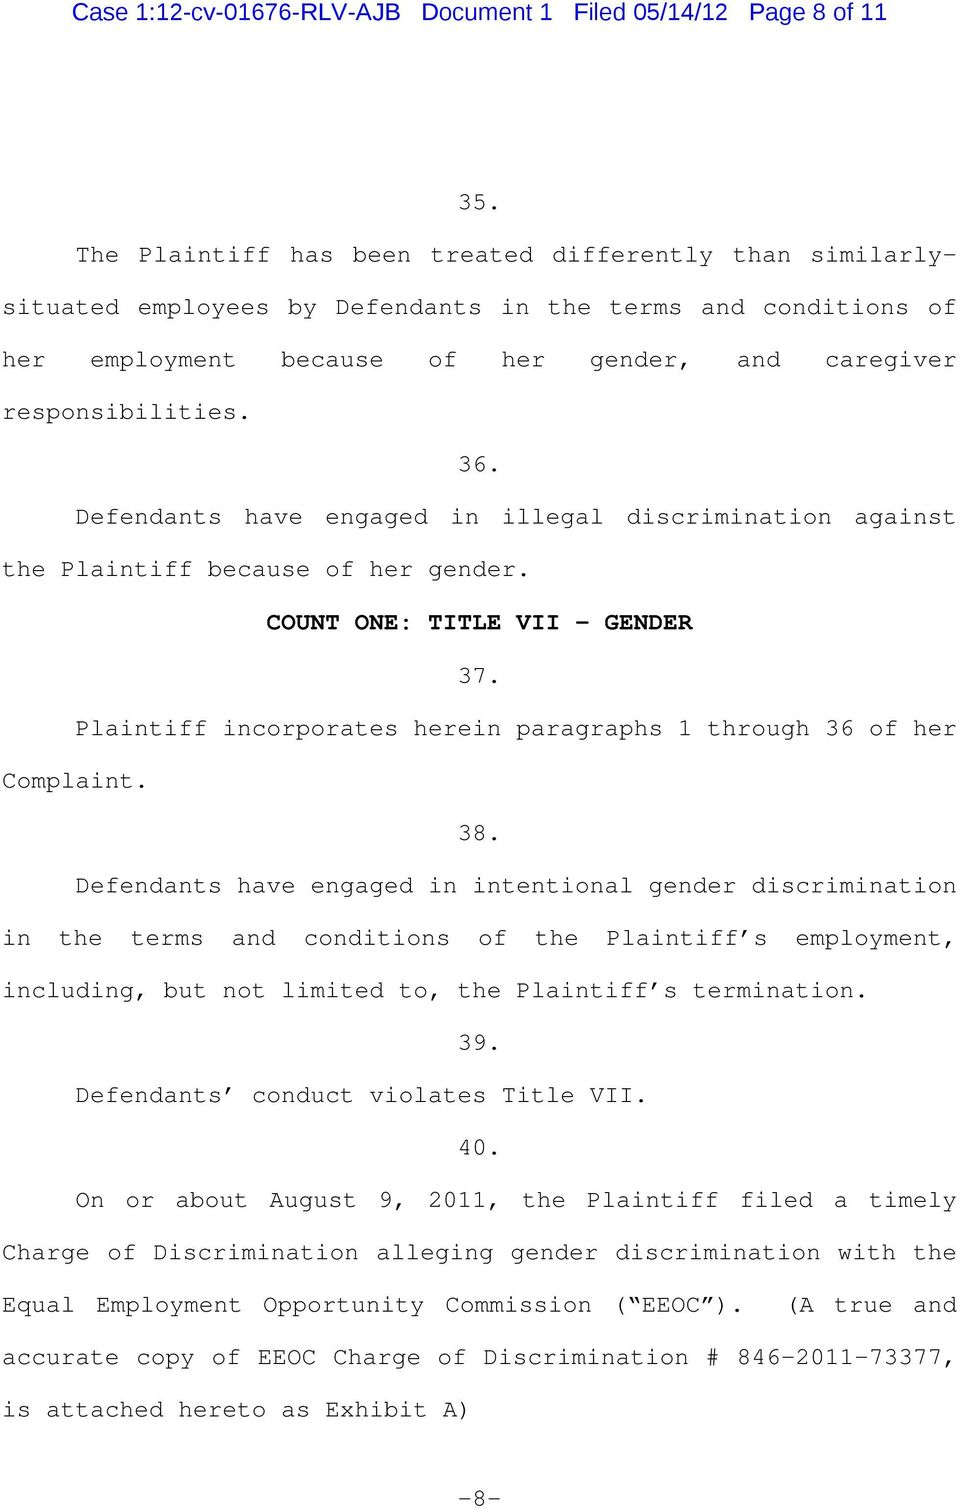 Defendants have engaged in illegal discrimination against the Plaintiff because of her gender. COUNT ONE: TITLE VII - GENDER 37. Plaintiff incorporates herein paragraphs 1 through 36 of her Complaint.